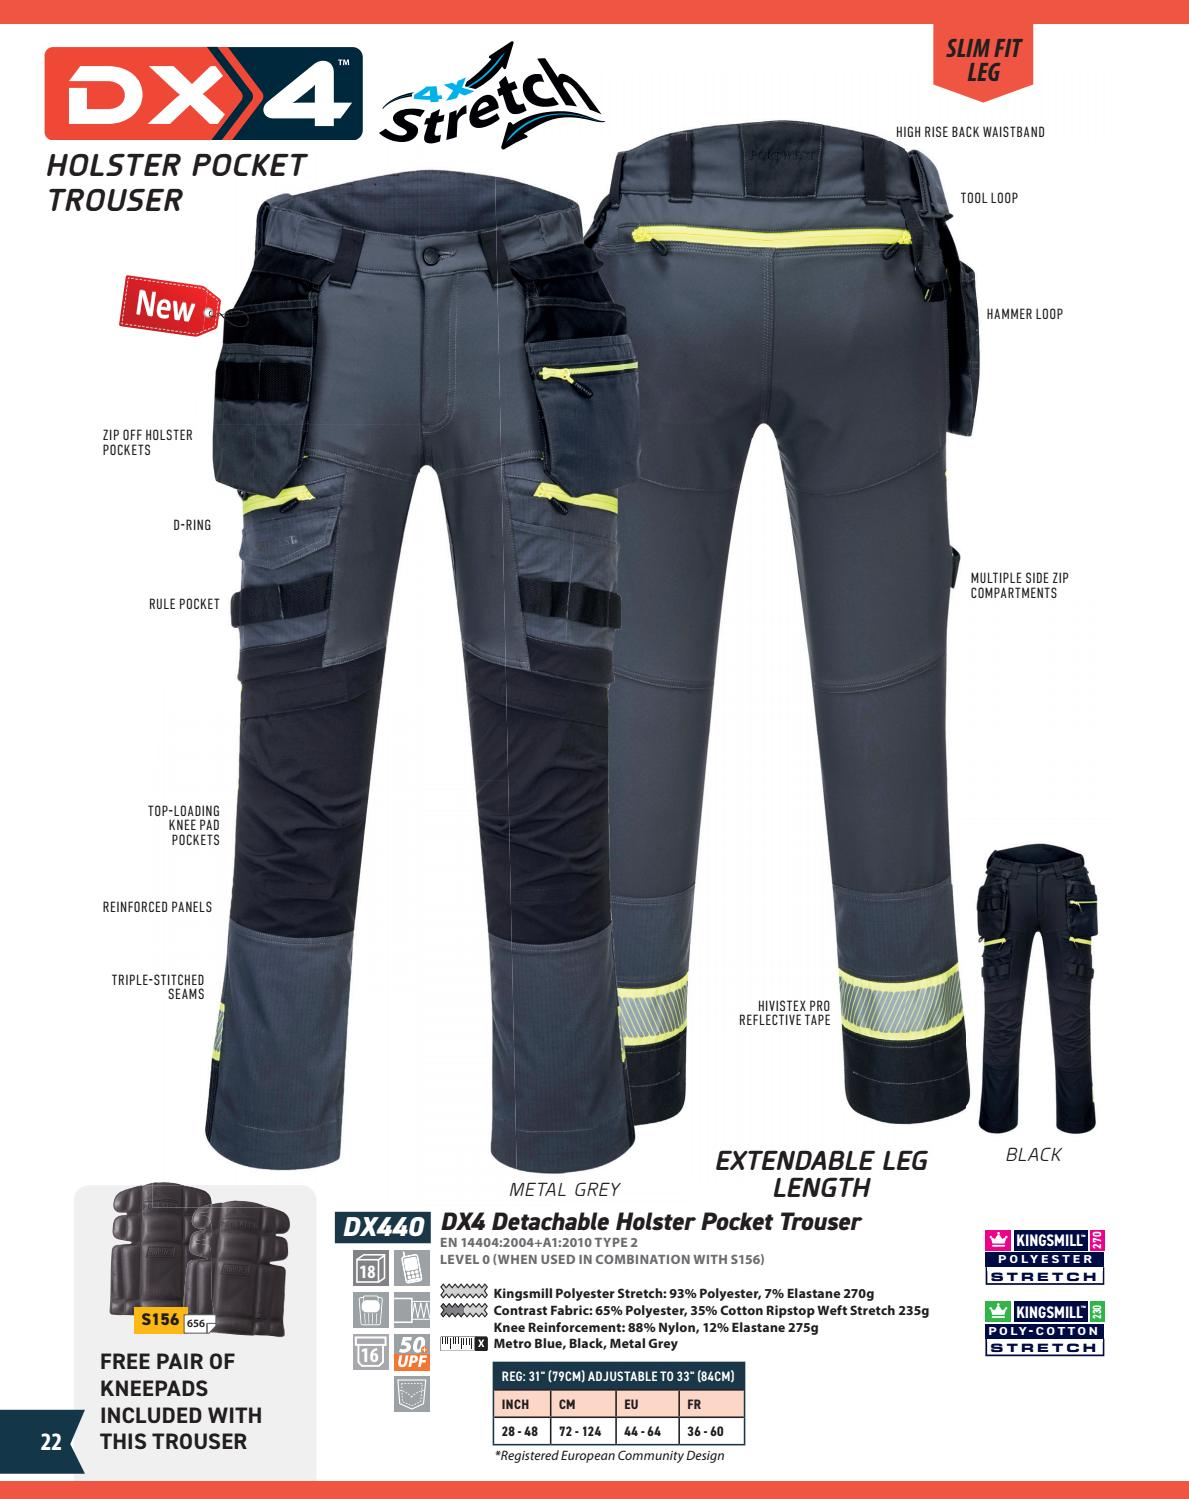 Metro Blue Portwest DX440 DX4 Detachable Holster Stretch Kneepad Work Trouser